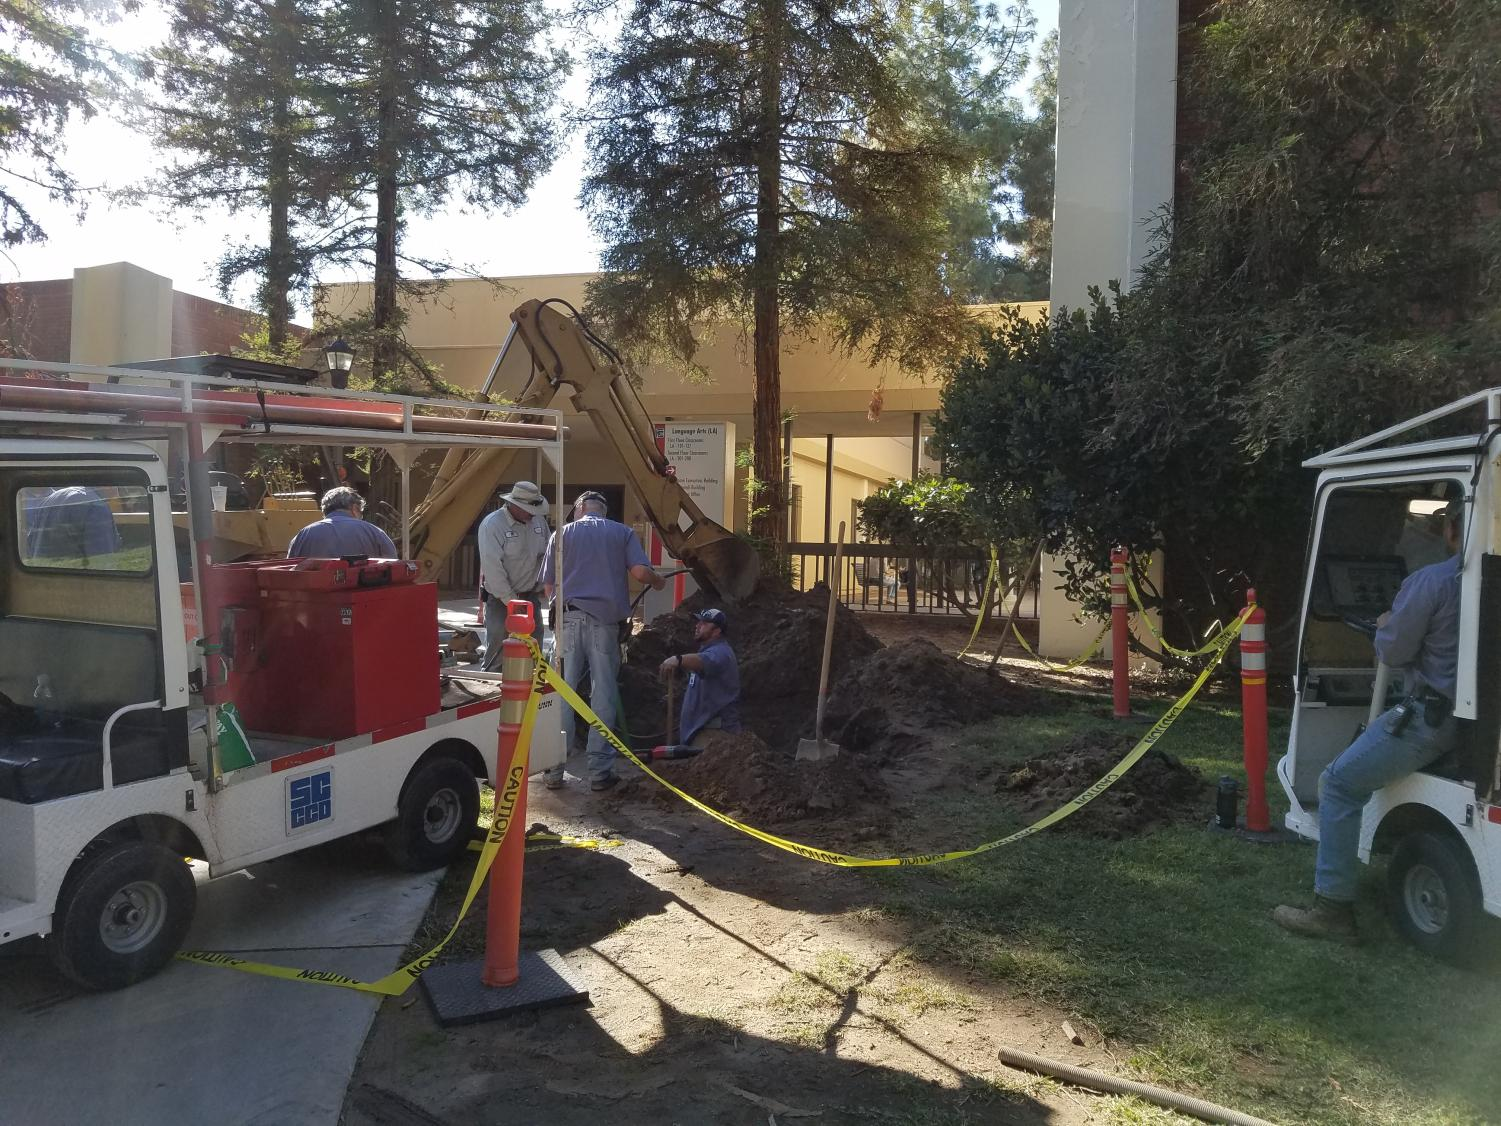 Maintenance crews work on a chilled water line leak near the Language Arts building at Fresno City College on Wednesday, Oct. 25, 2017.